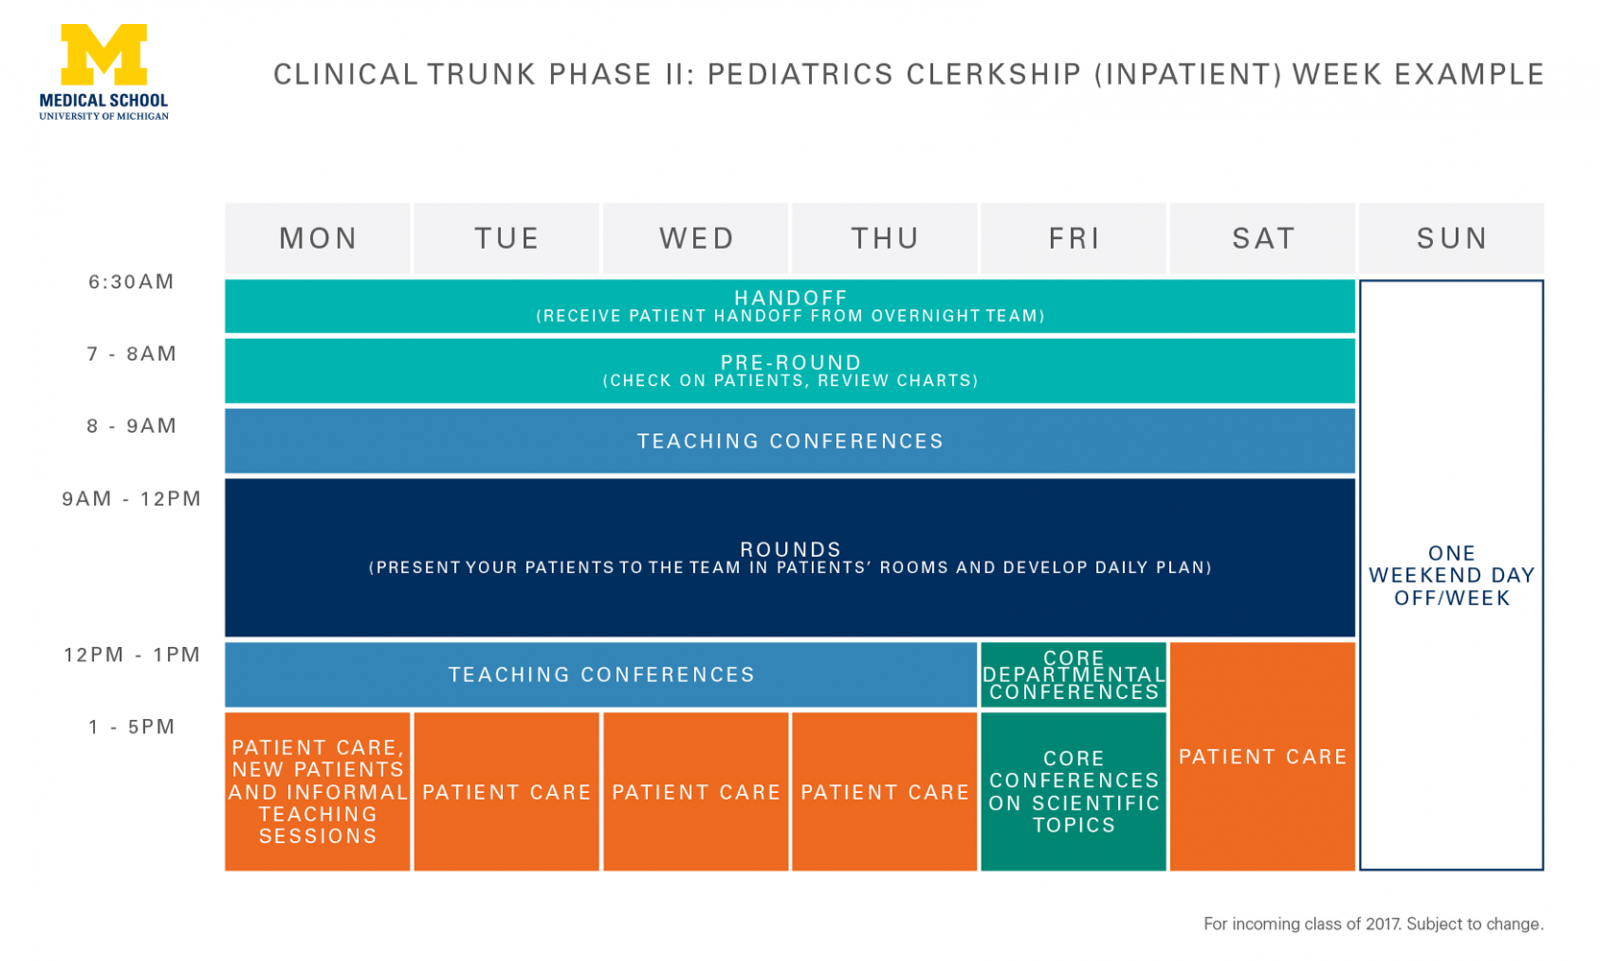 M.D. clinical trunk curricular diagram showing a 1-week inpatient schedule